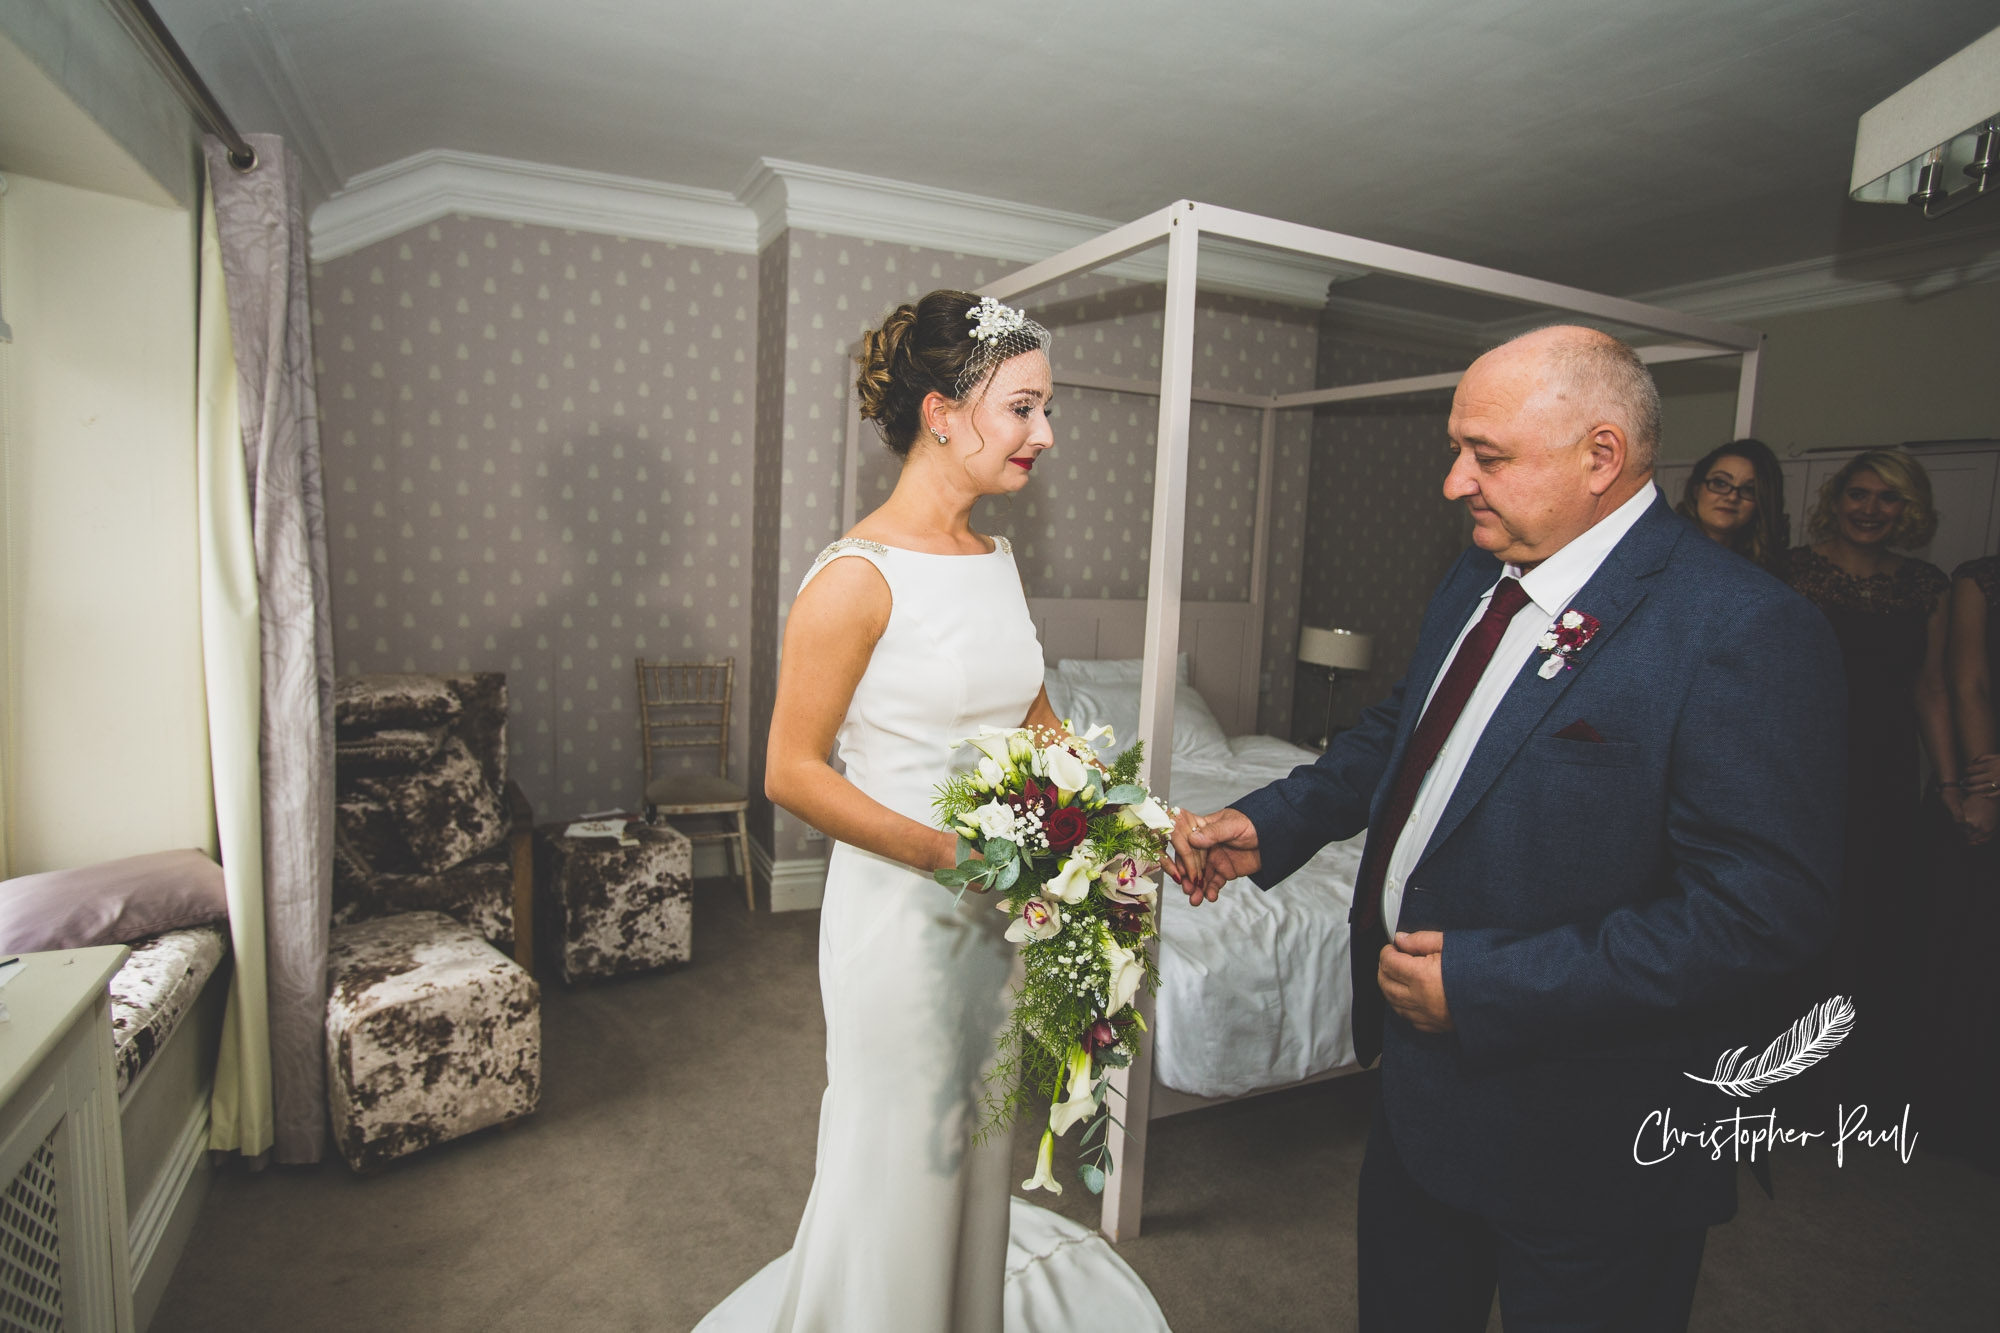 Court Colman wedding photos - First look for dad